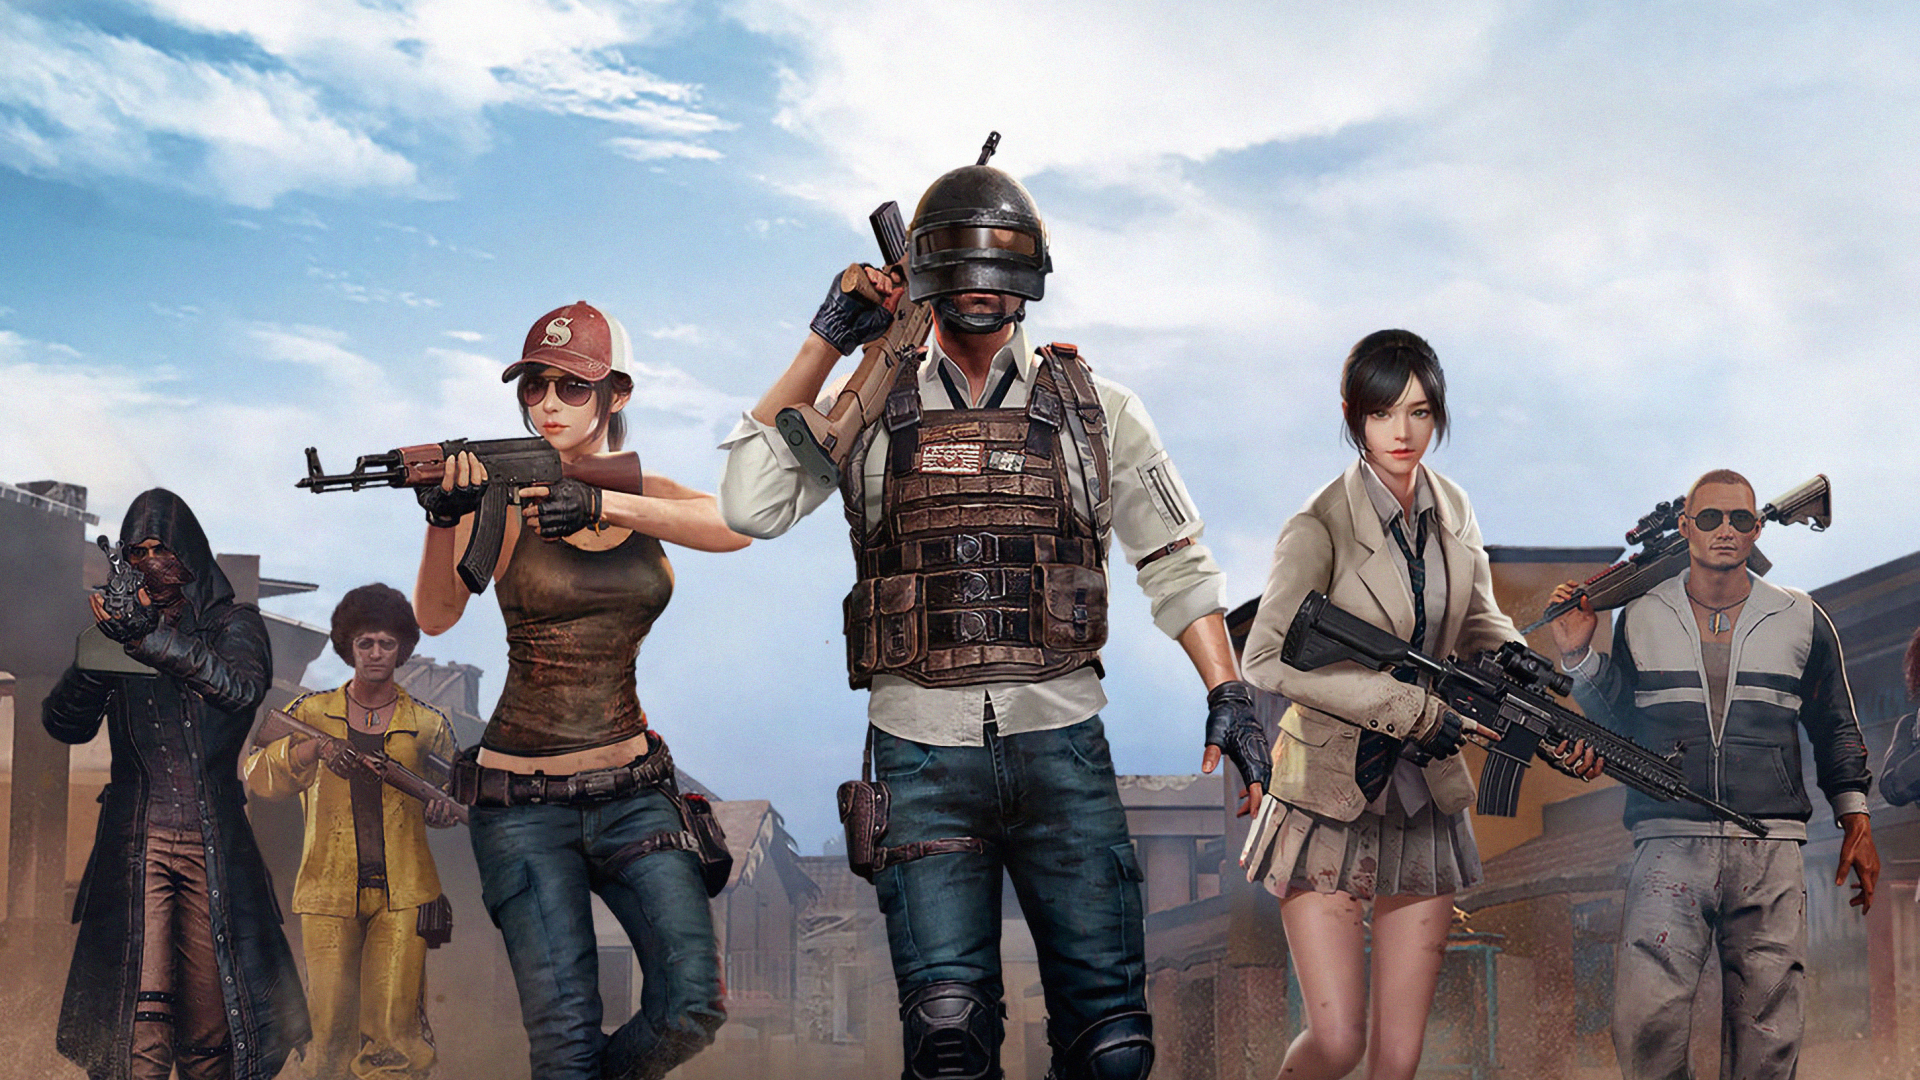 1920x1080 Squad Of Pubg 1080p Laptop Full Hd Wallpaper Hd Games 4k Wallpapers Images Photos And Background